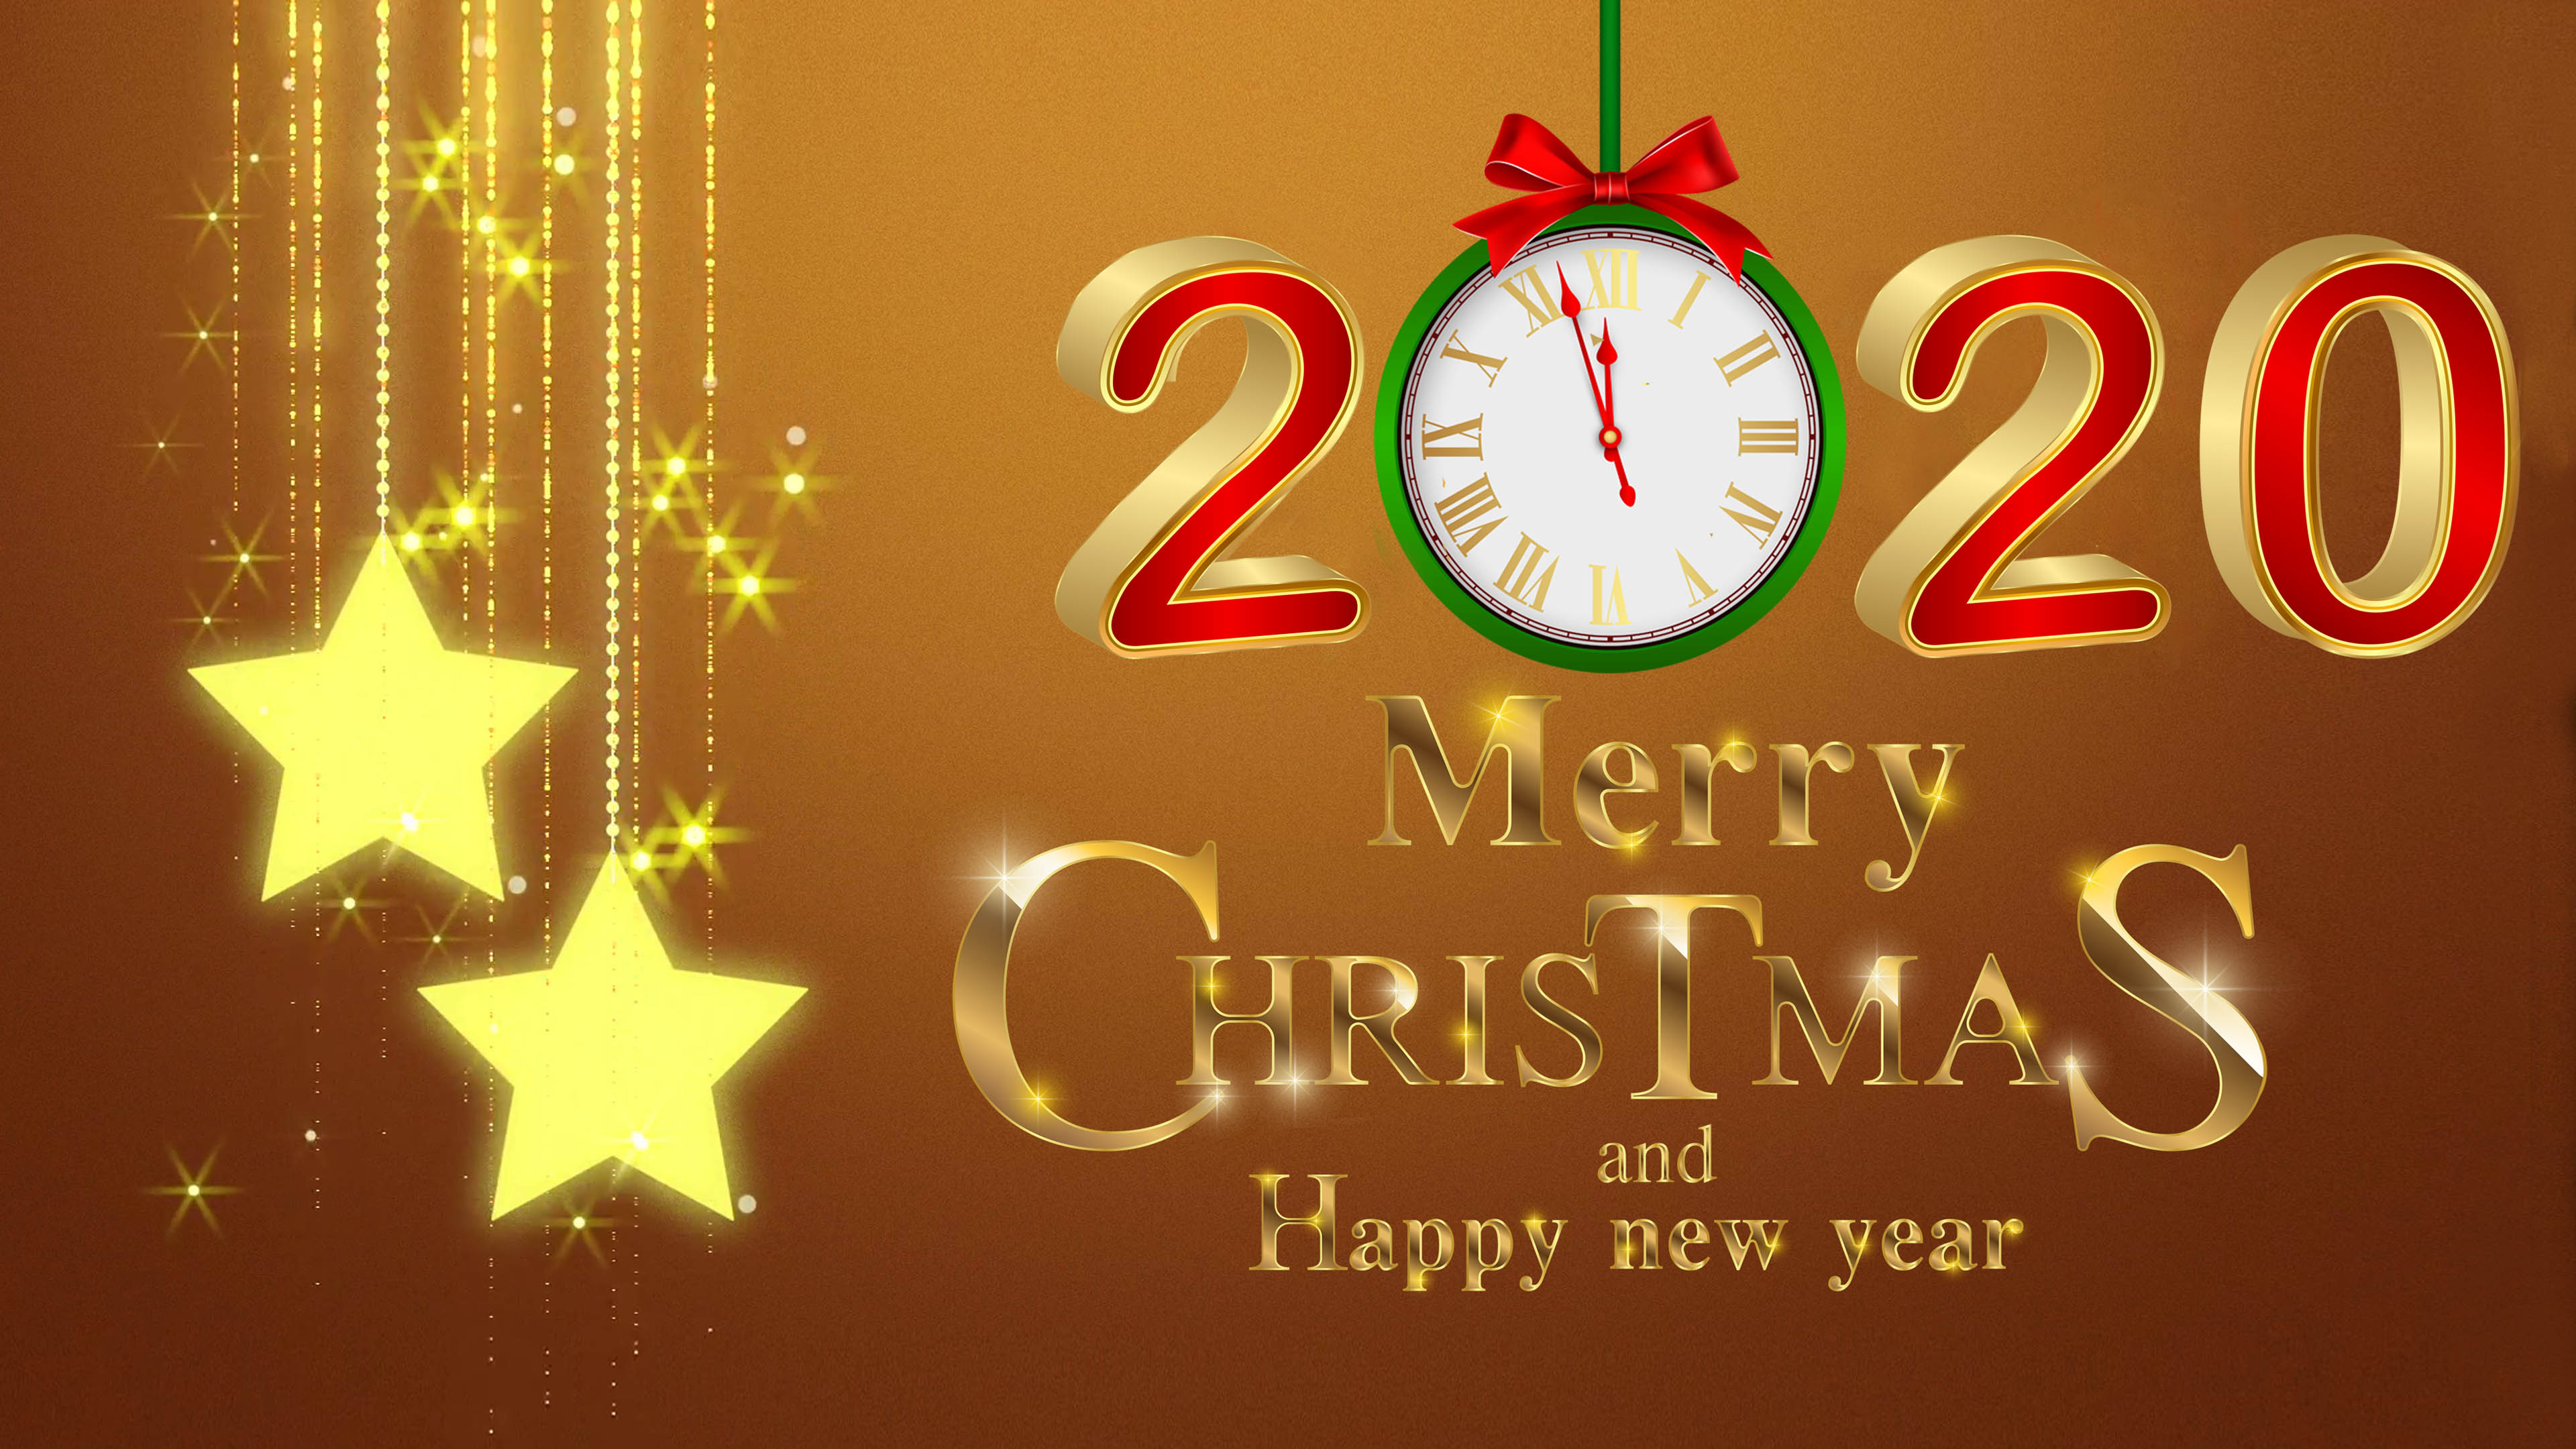 download Merry Christmas And Happy New Year 2020 Gold 4k 3840x2160